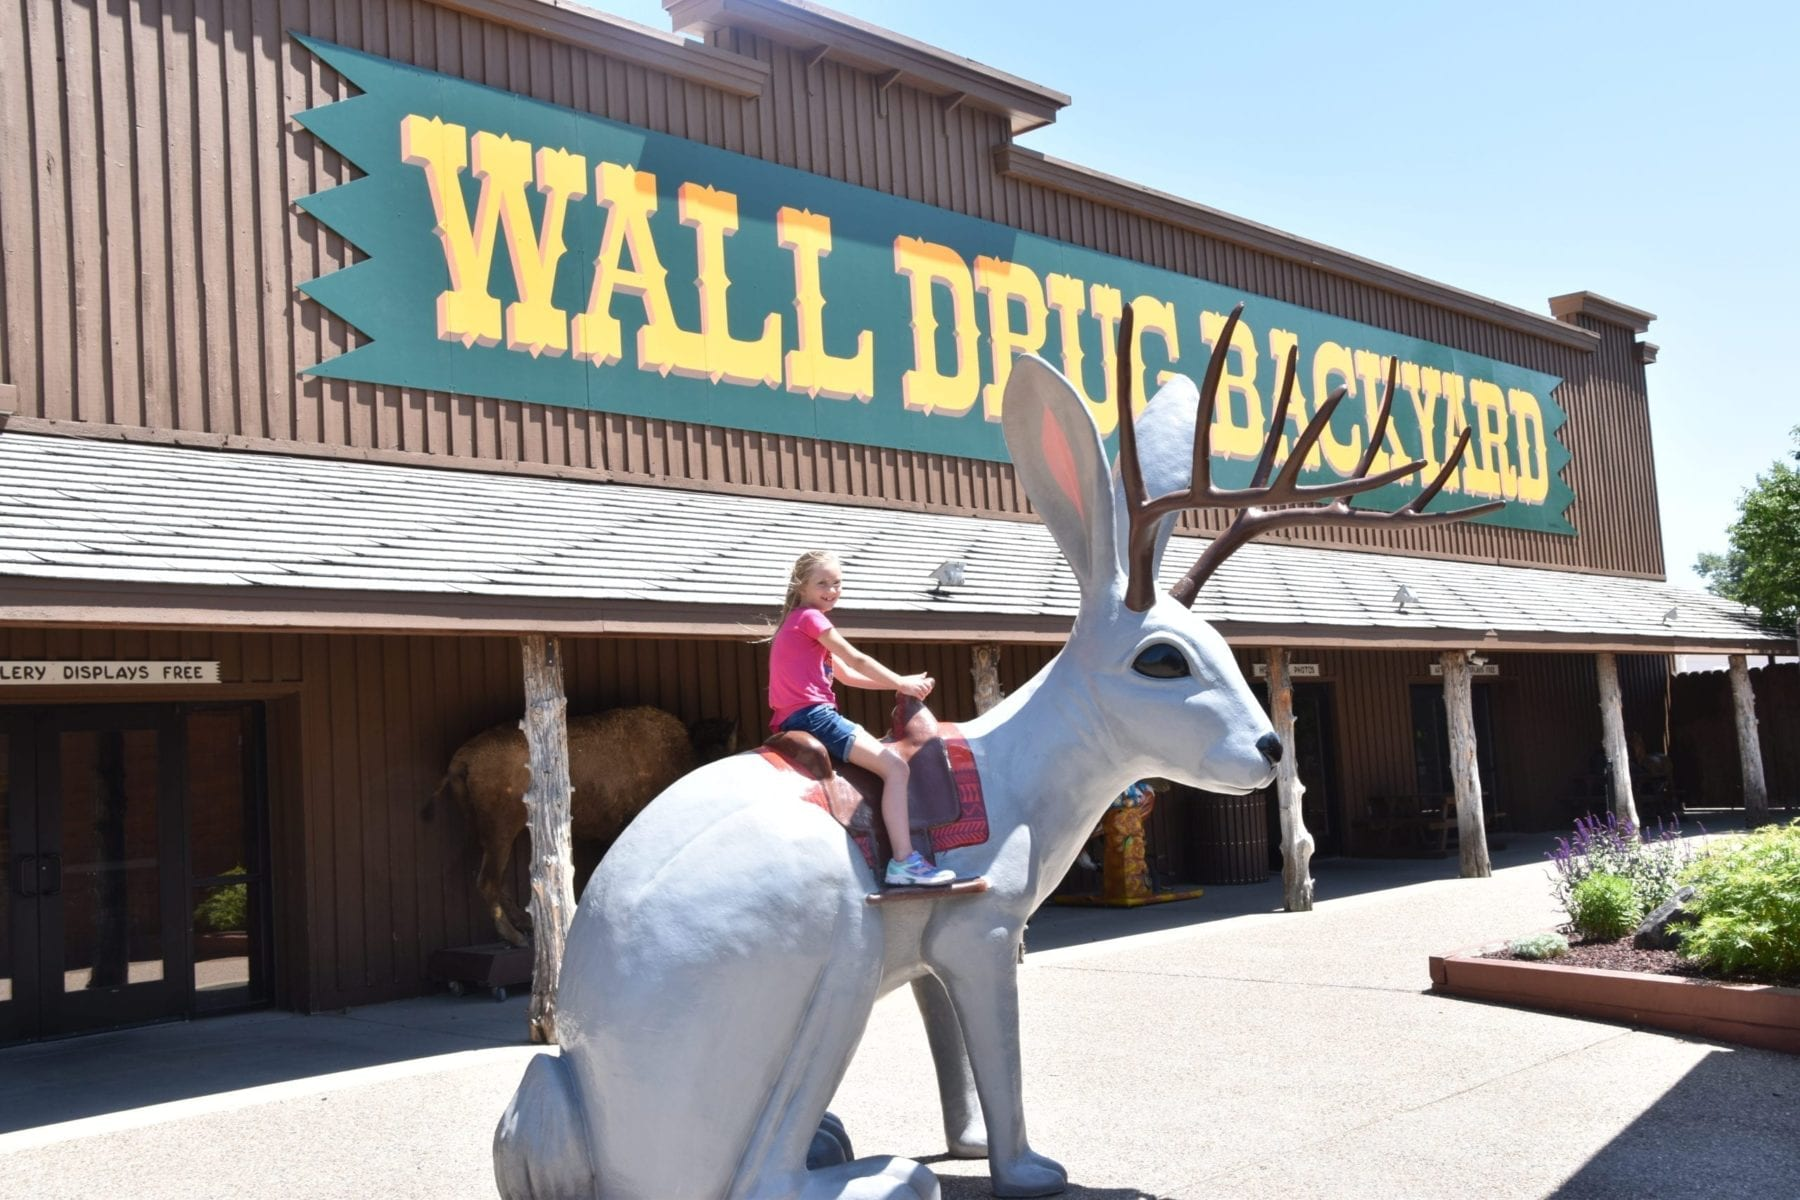 things to do at Wall drug store